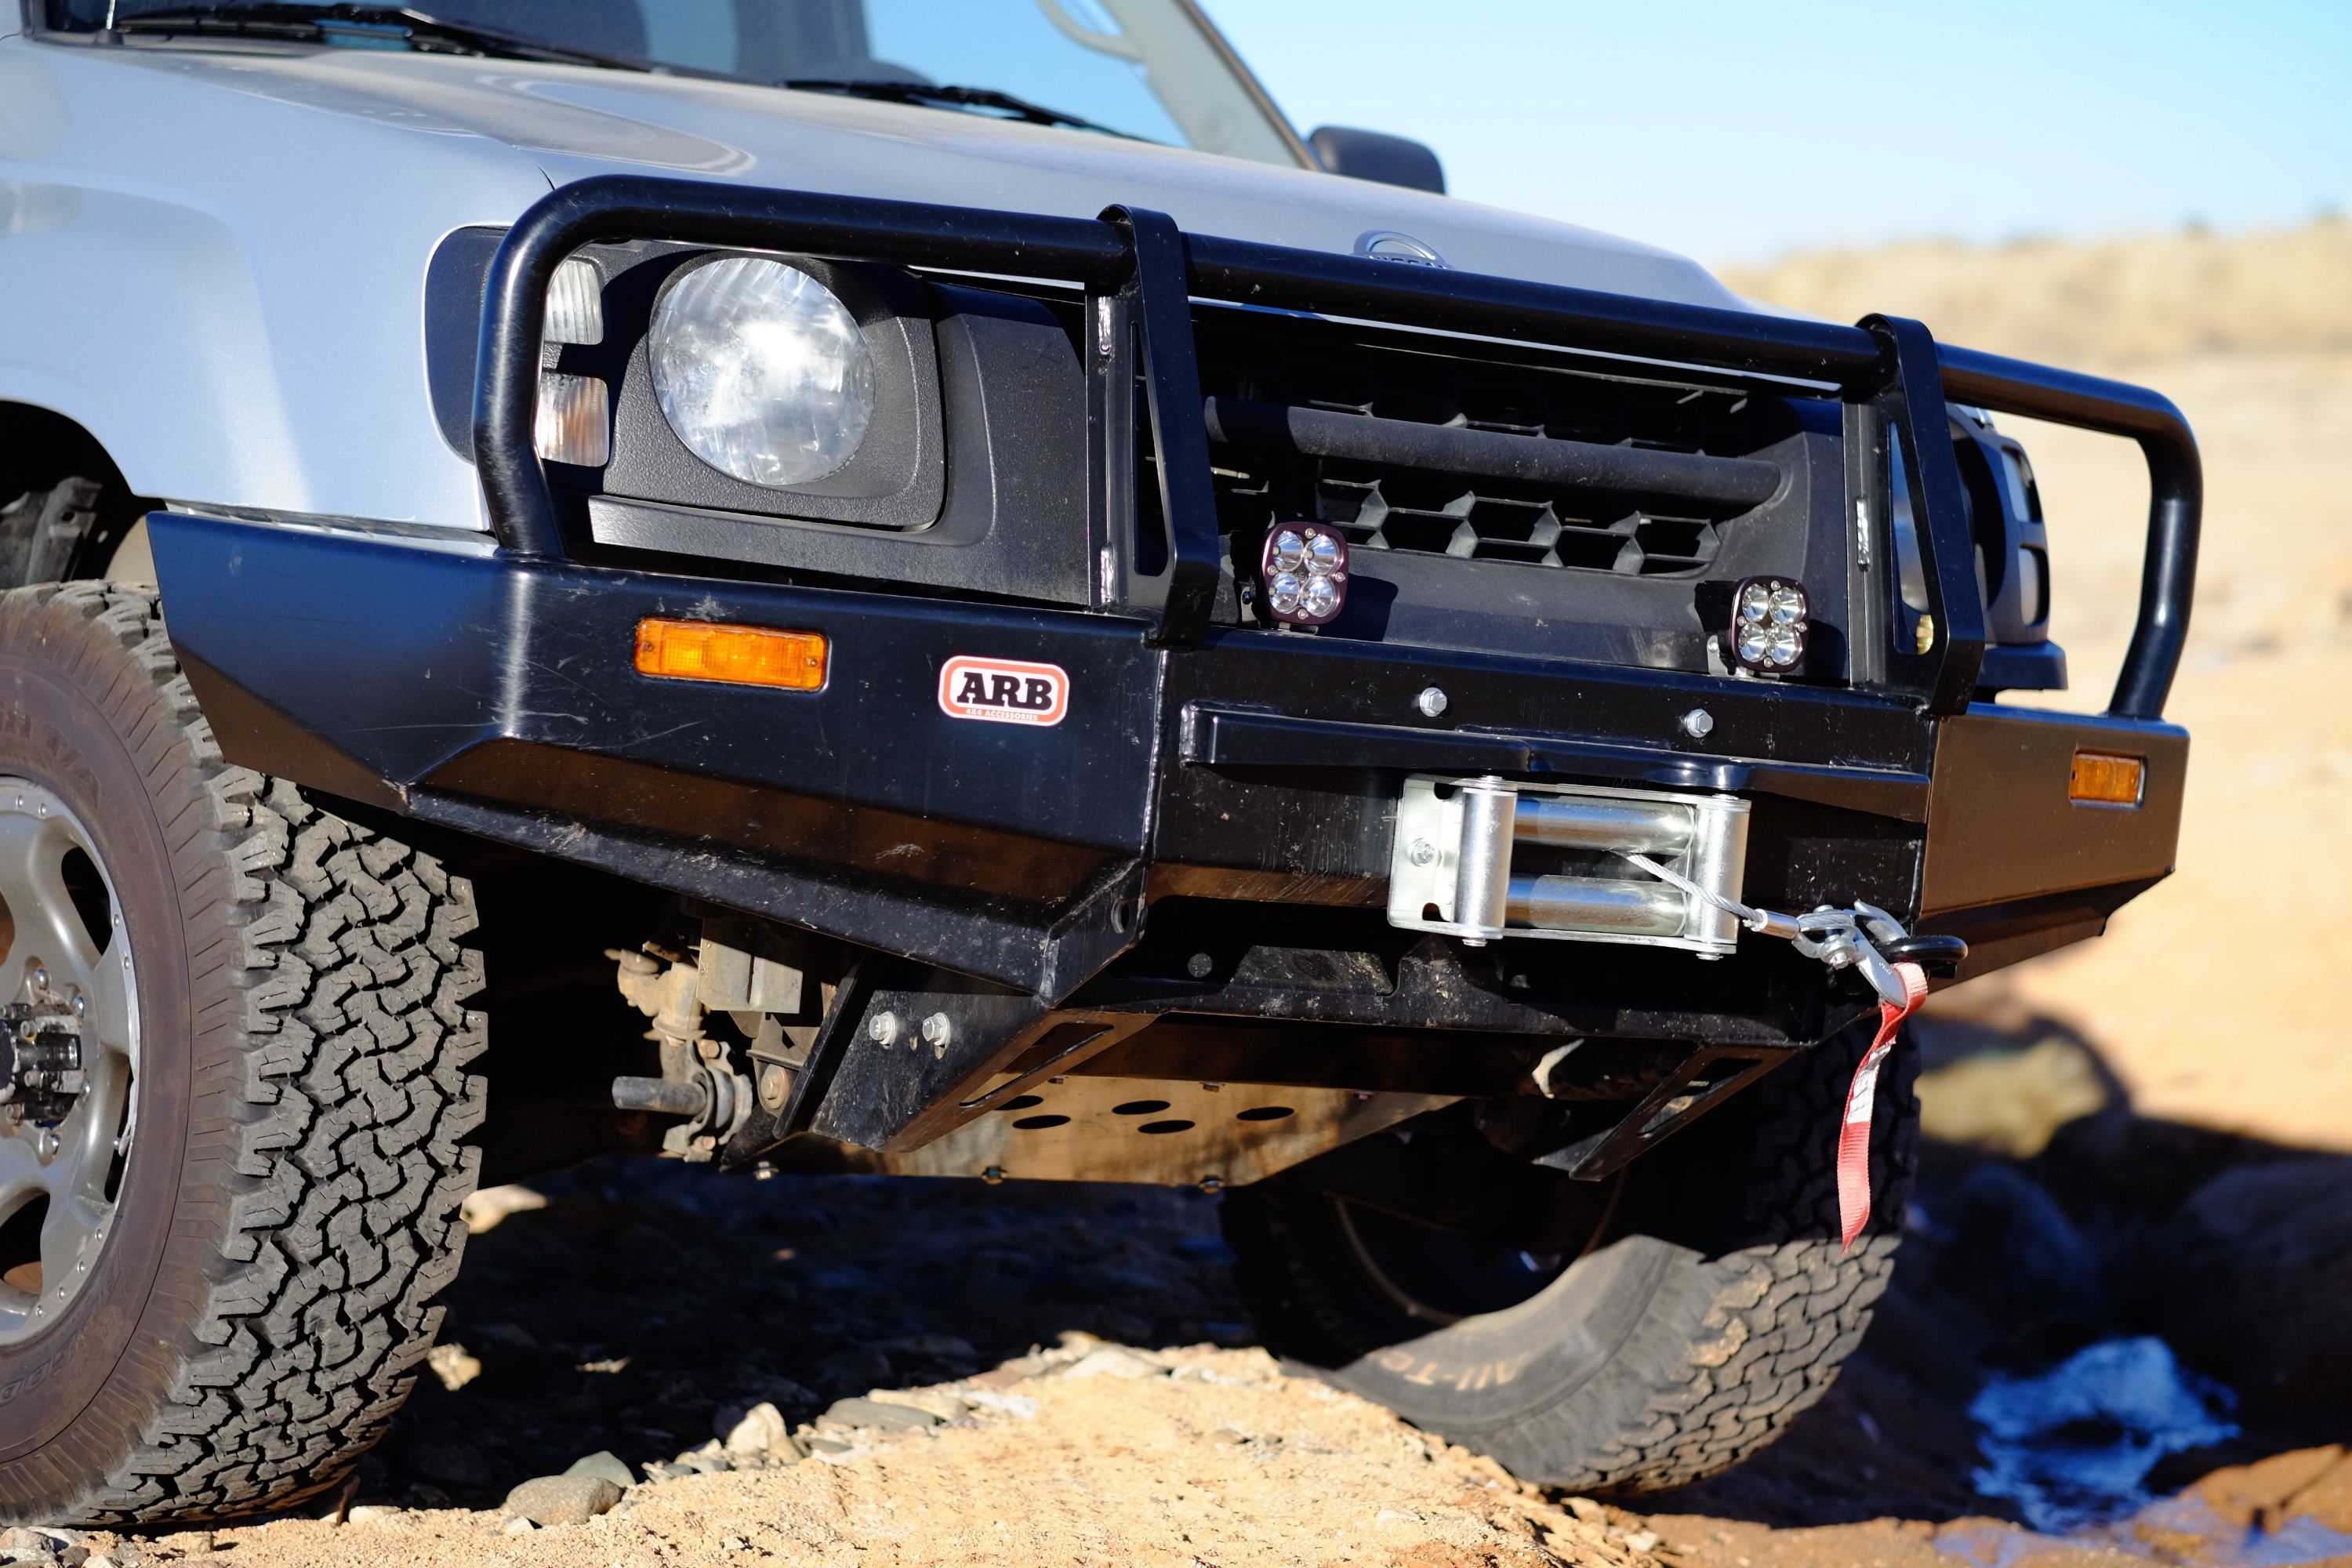 Featured vehicle 2003 nissan xterra expedition portal with guidance and work performed by the overland mavens at at overland in prescott this xterra is head and shoulders above any other weve seen vanachro Gallery